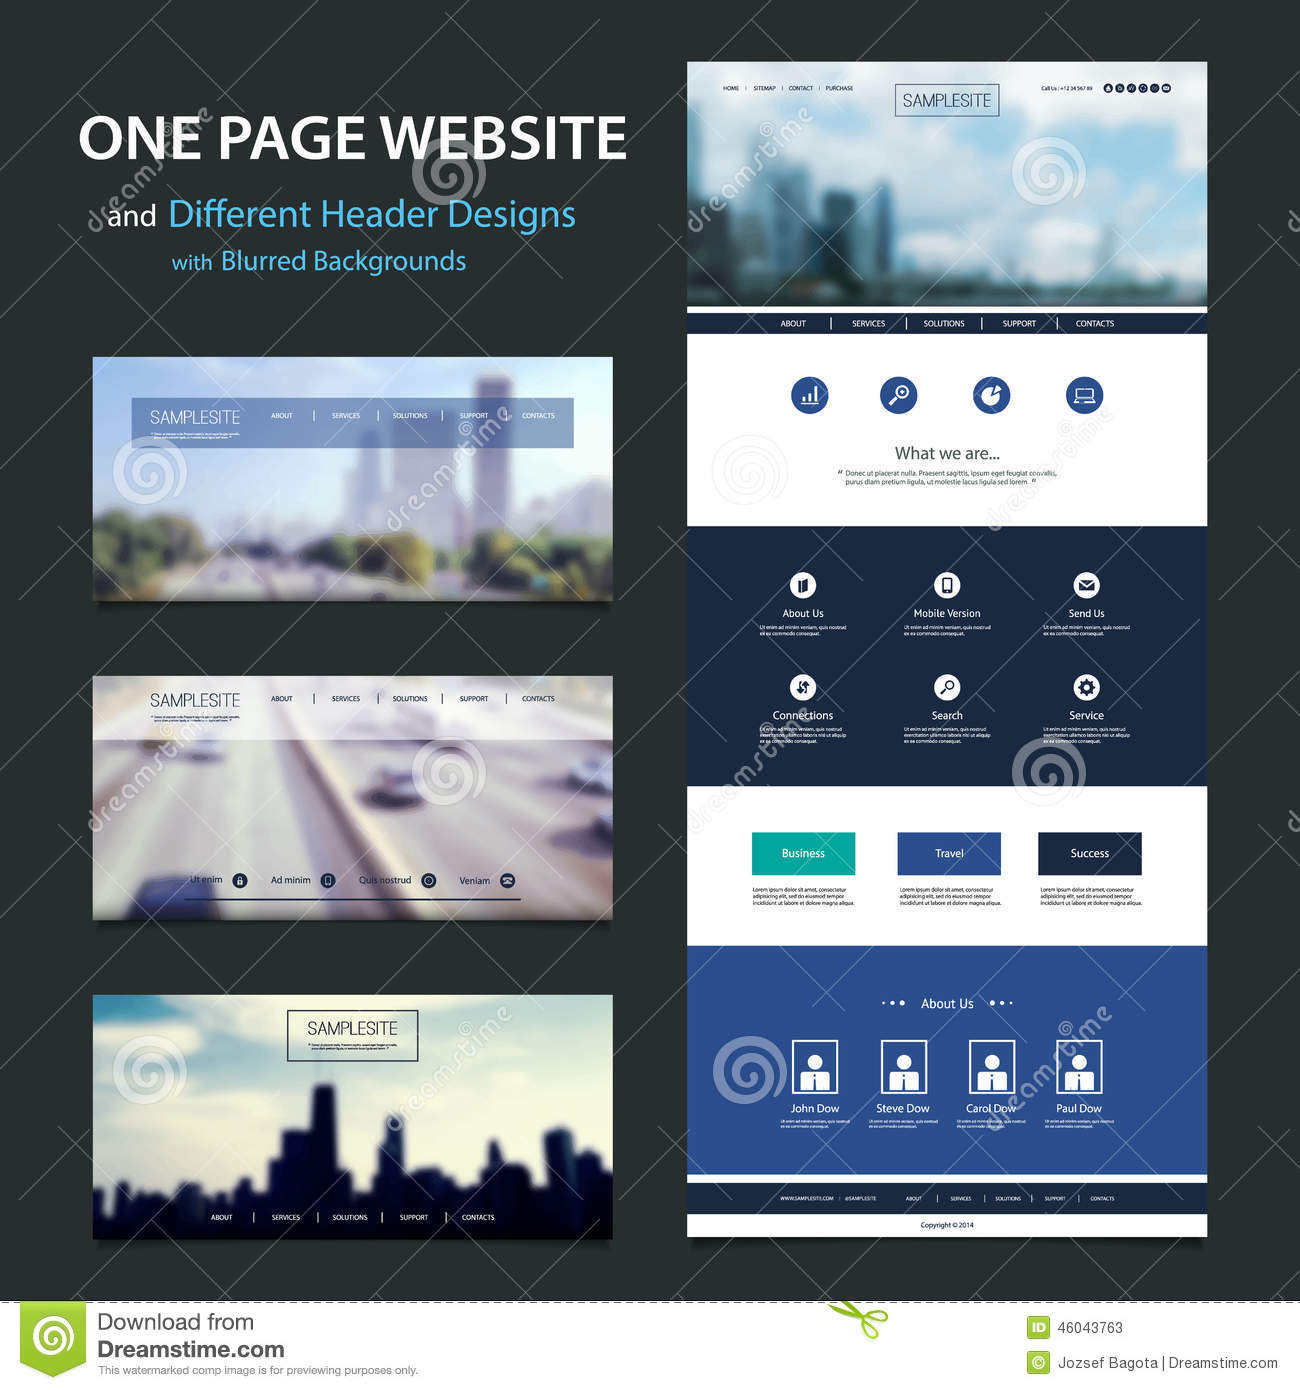 One Page Website Template And Different Header Designs With Blurred Homepage Web Design Header on web based design, web time design, web column design, web panel design, web link design, cool web design, web colors design, web module design, web design backgrounds, web source design, green web page design, web switch design, web line design, web search design, web address design, web filter design, web fonts design, website headings design, web truss design, web html design,